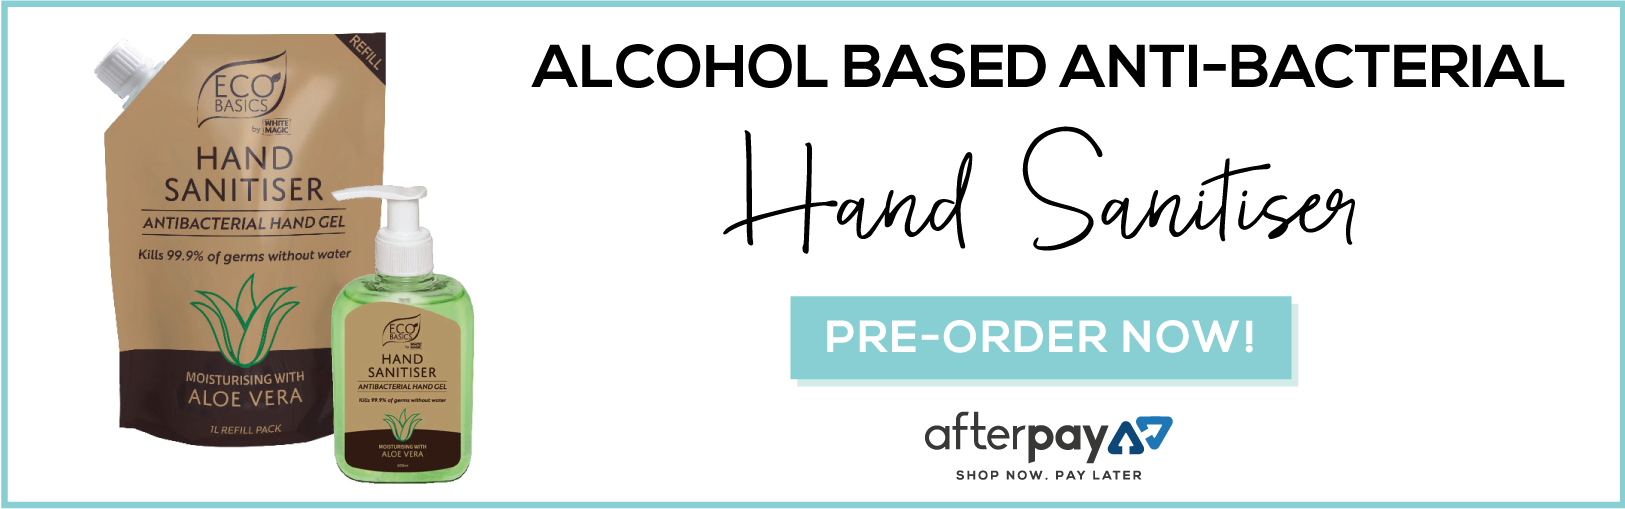 alcohol based anti-bacterial hand sanitiser